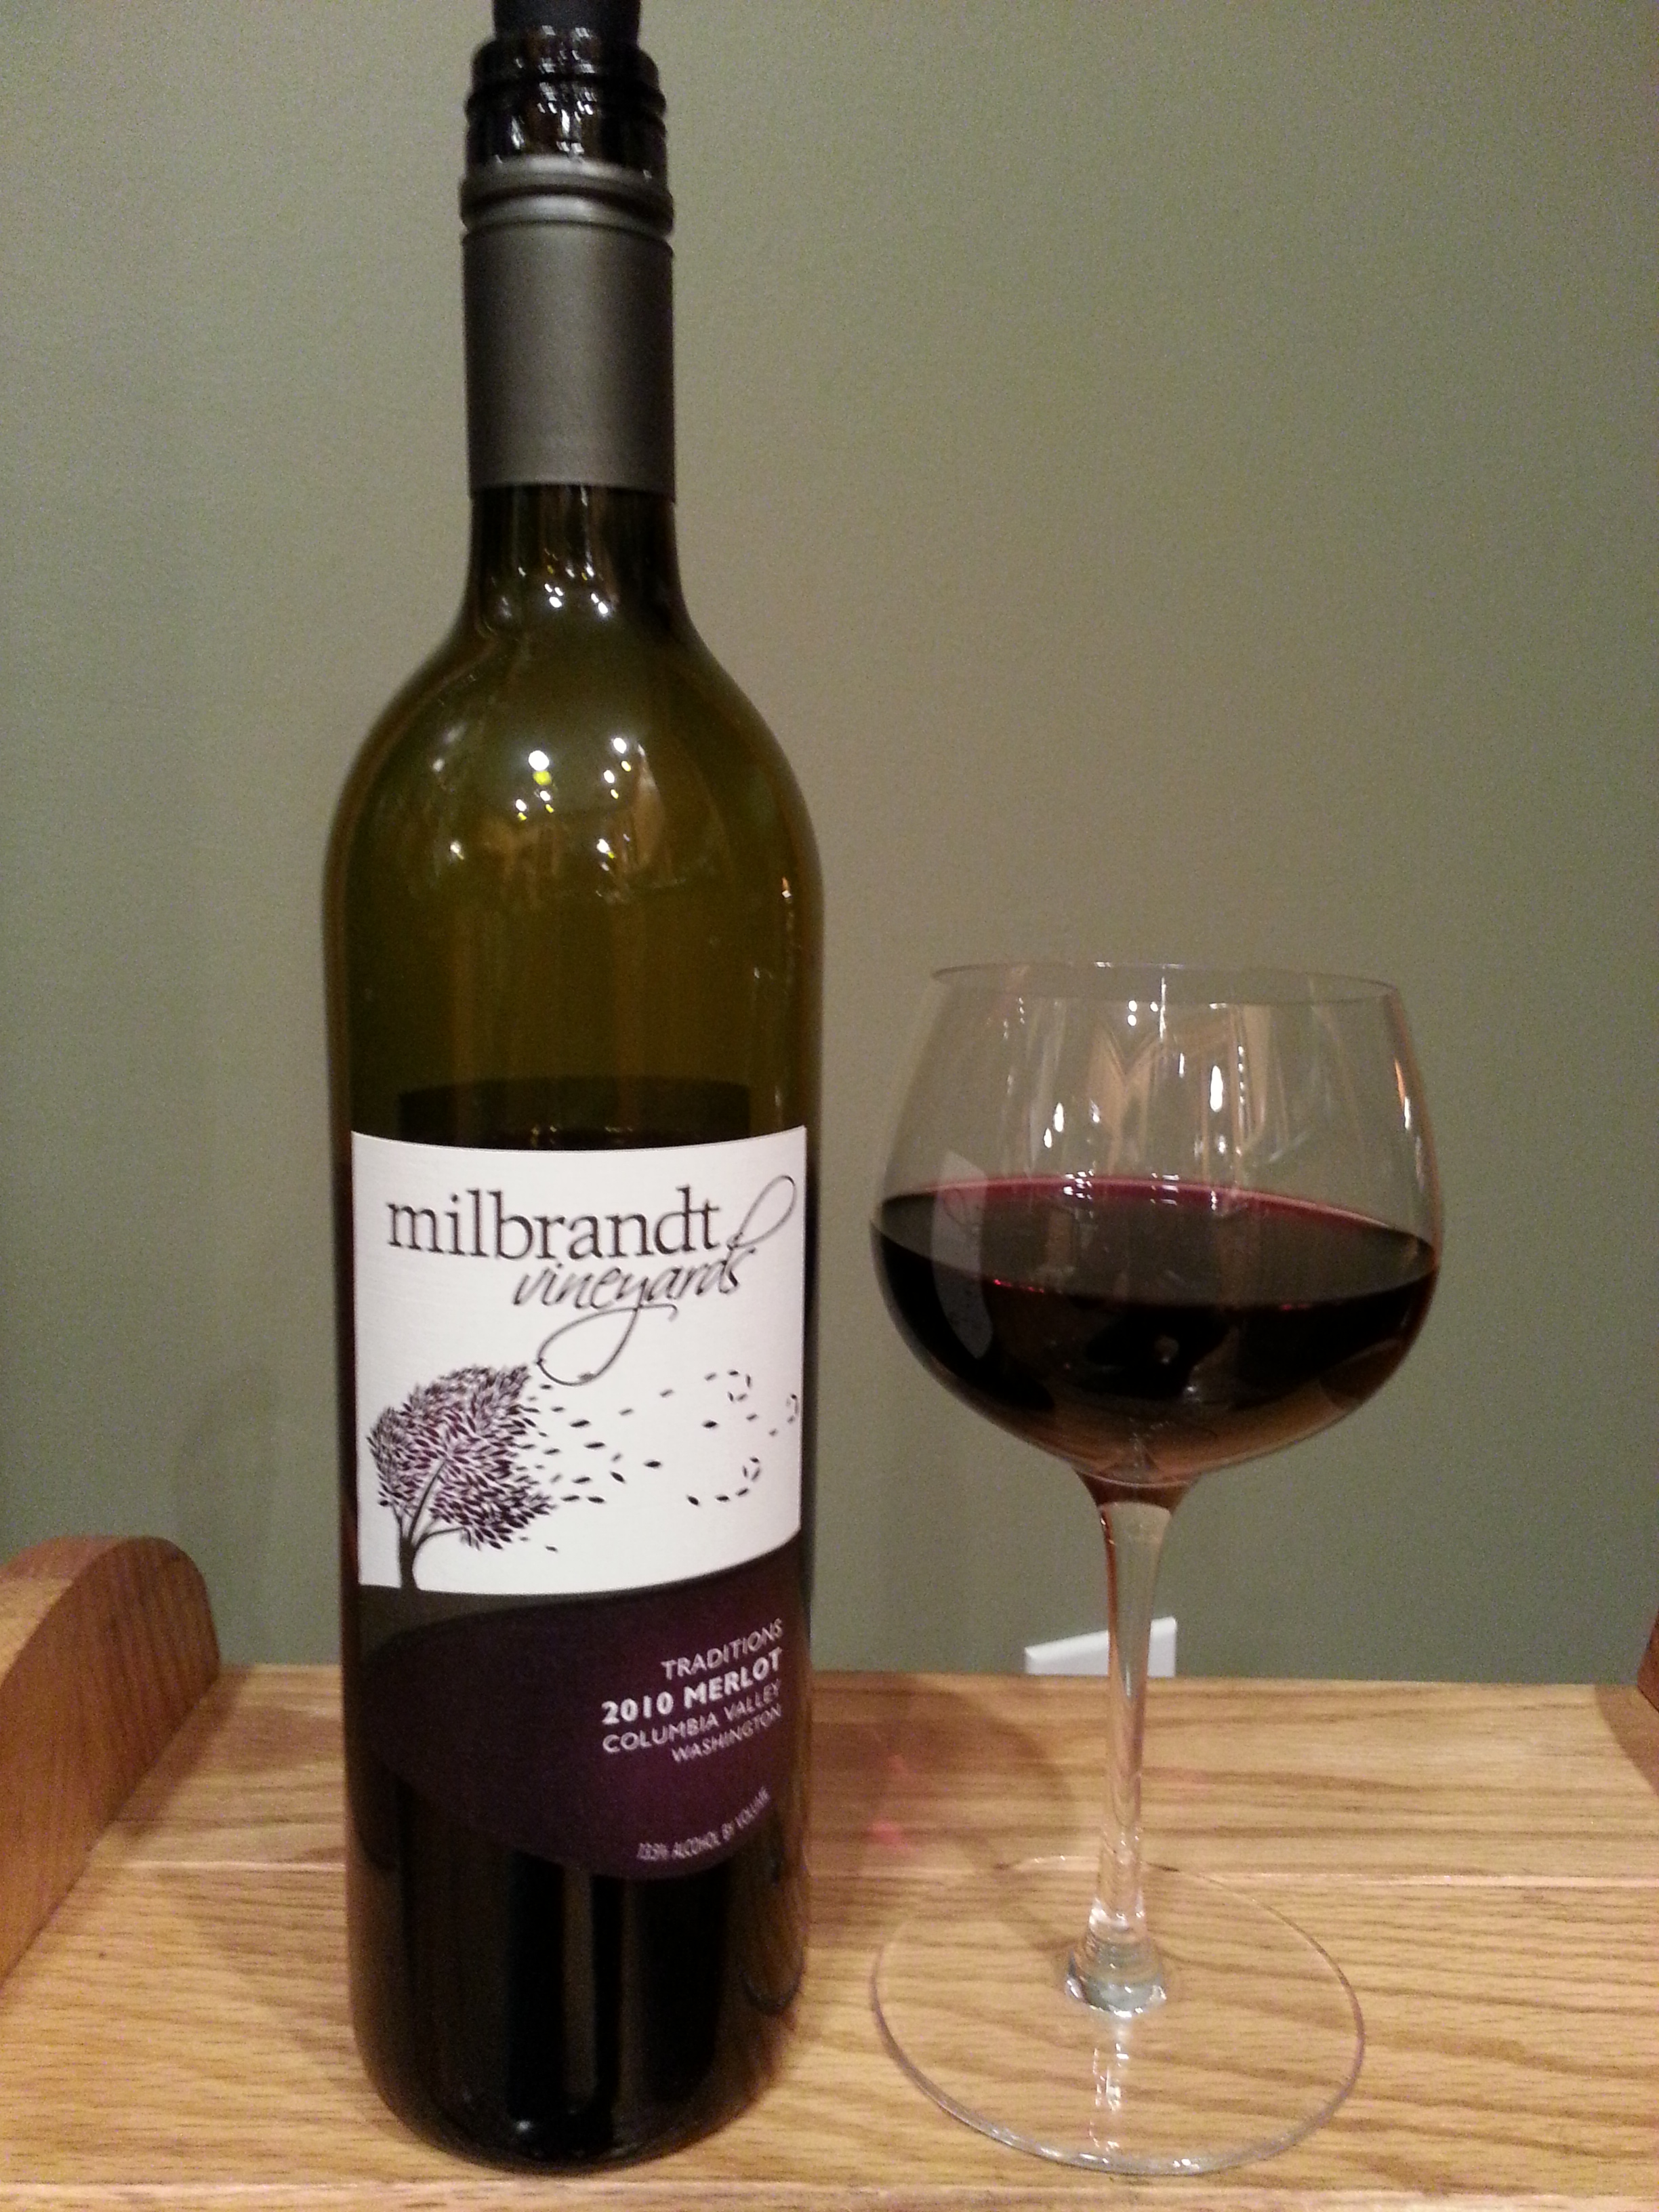 Milbrandt Vineyards Merlot Traditions (2010)